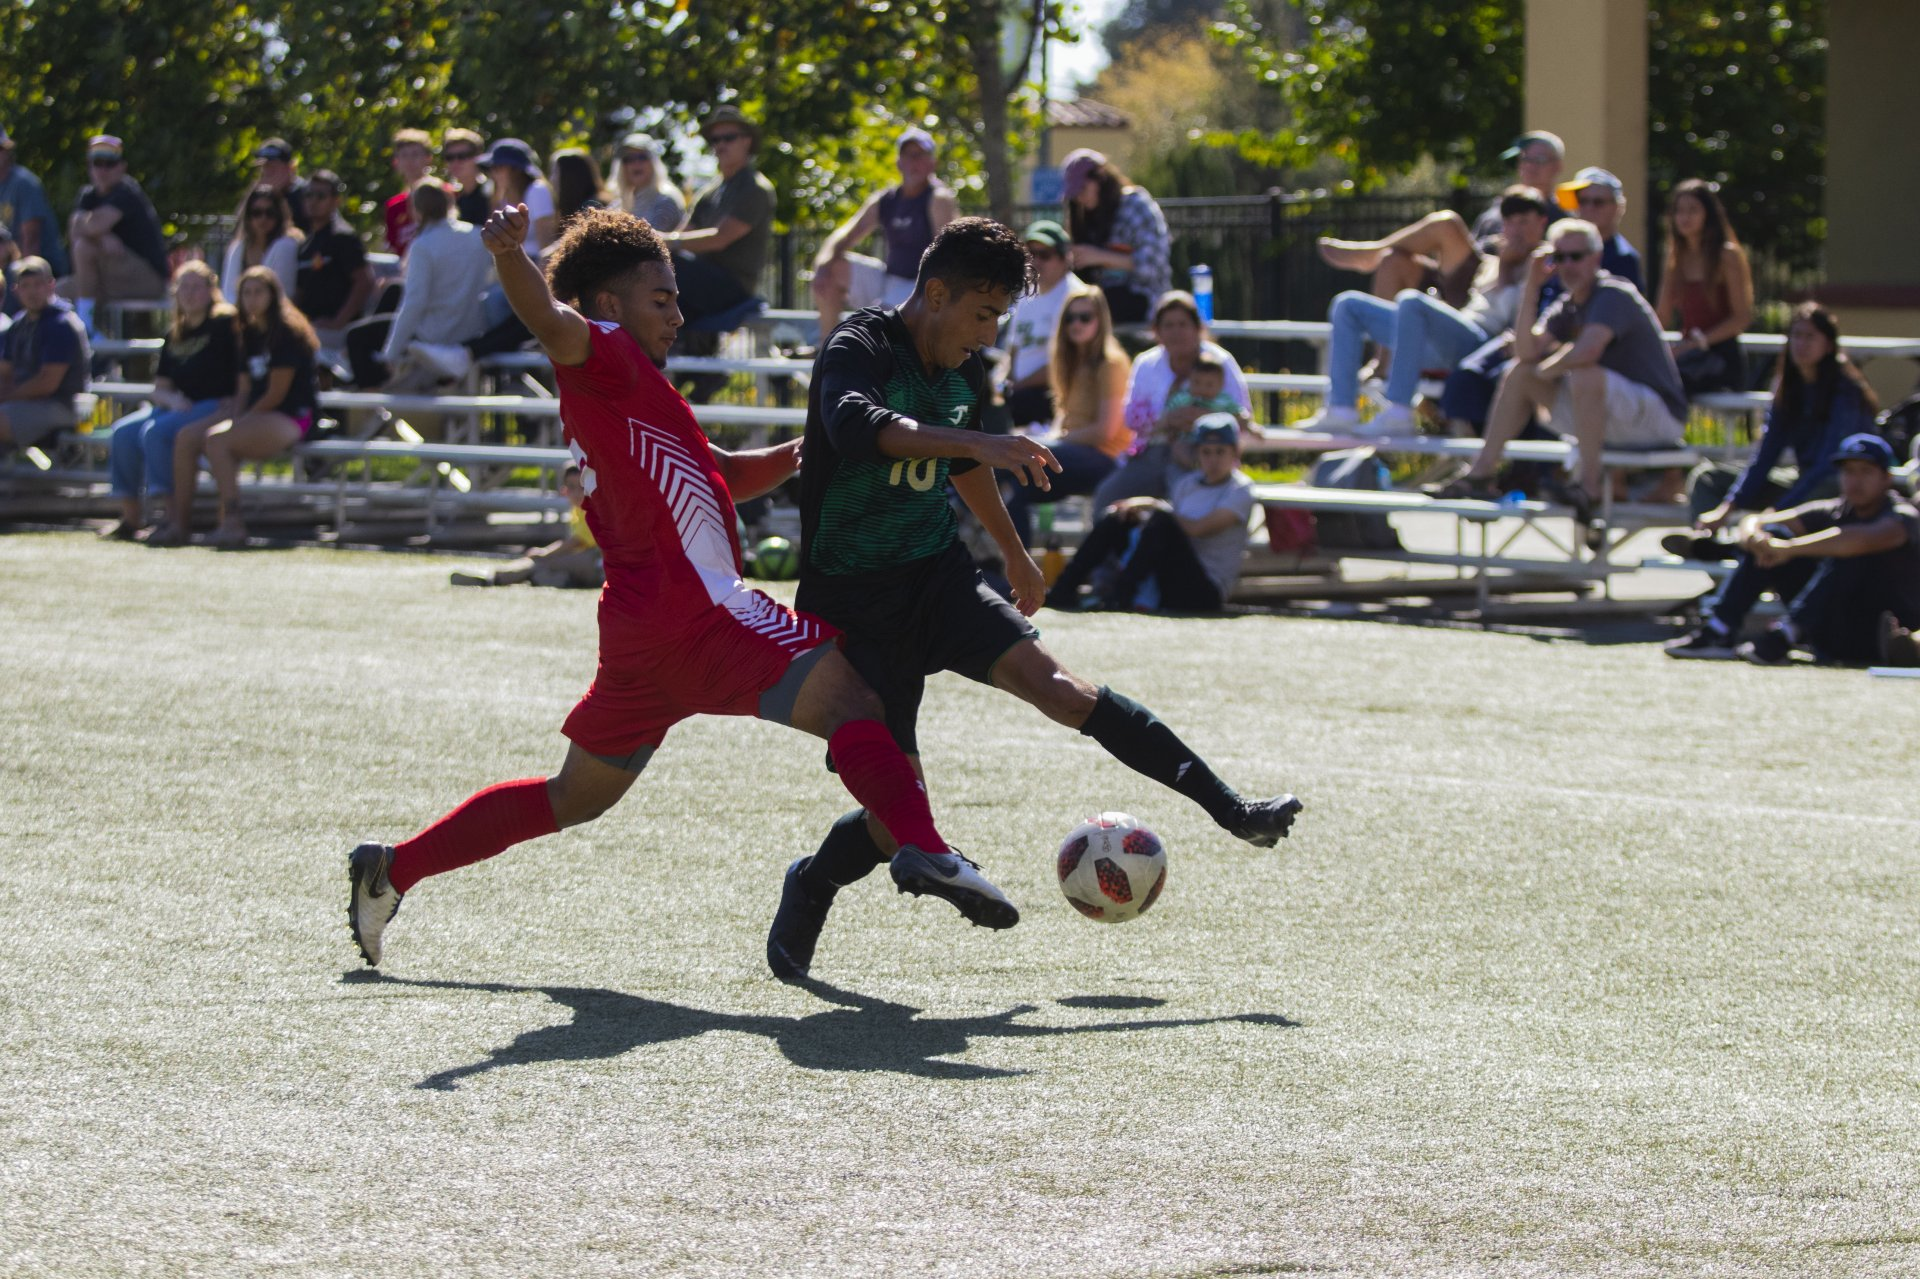 Humboldt State midfielder Israel Gonzalez is challenged by Stanislaus defenseman Carlos Amaya while attacking in the offensive zone during their match on Oct. 6 at College Creek Field. | Photo by Thomas Lal